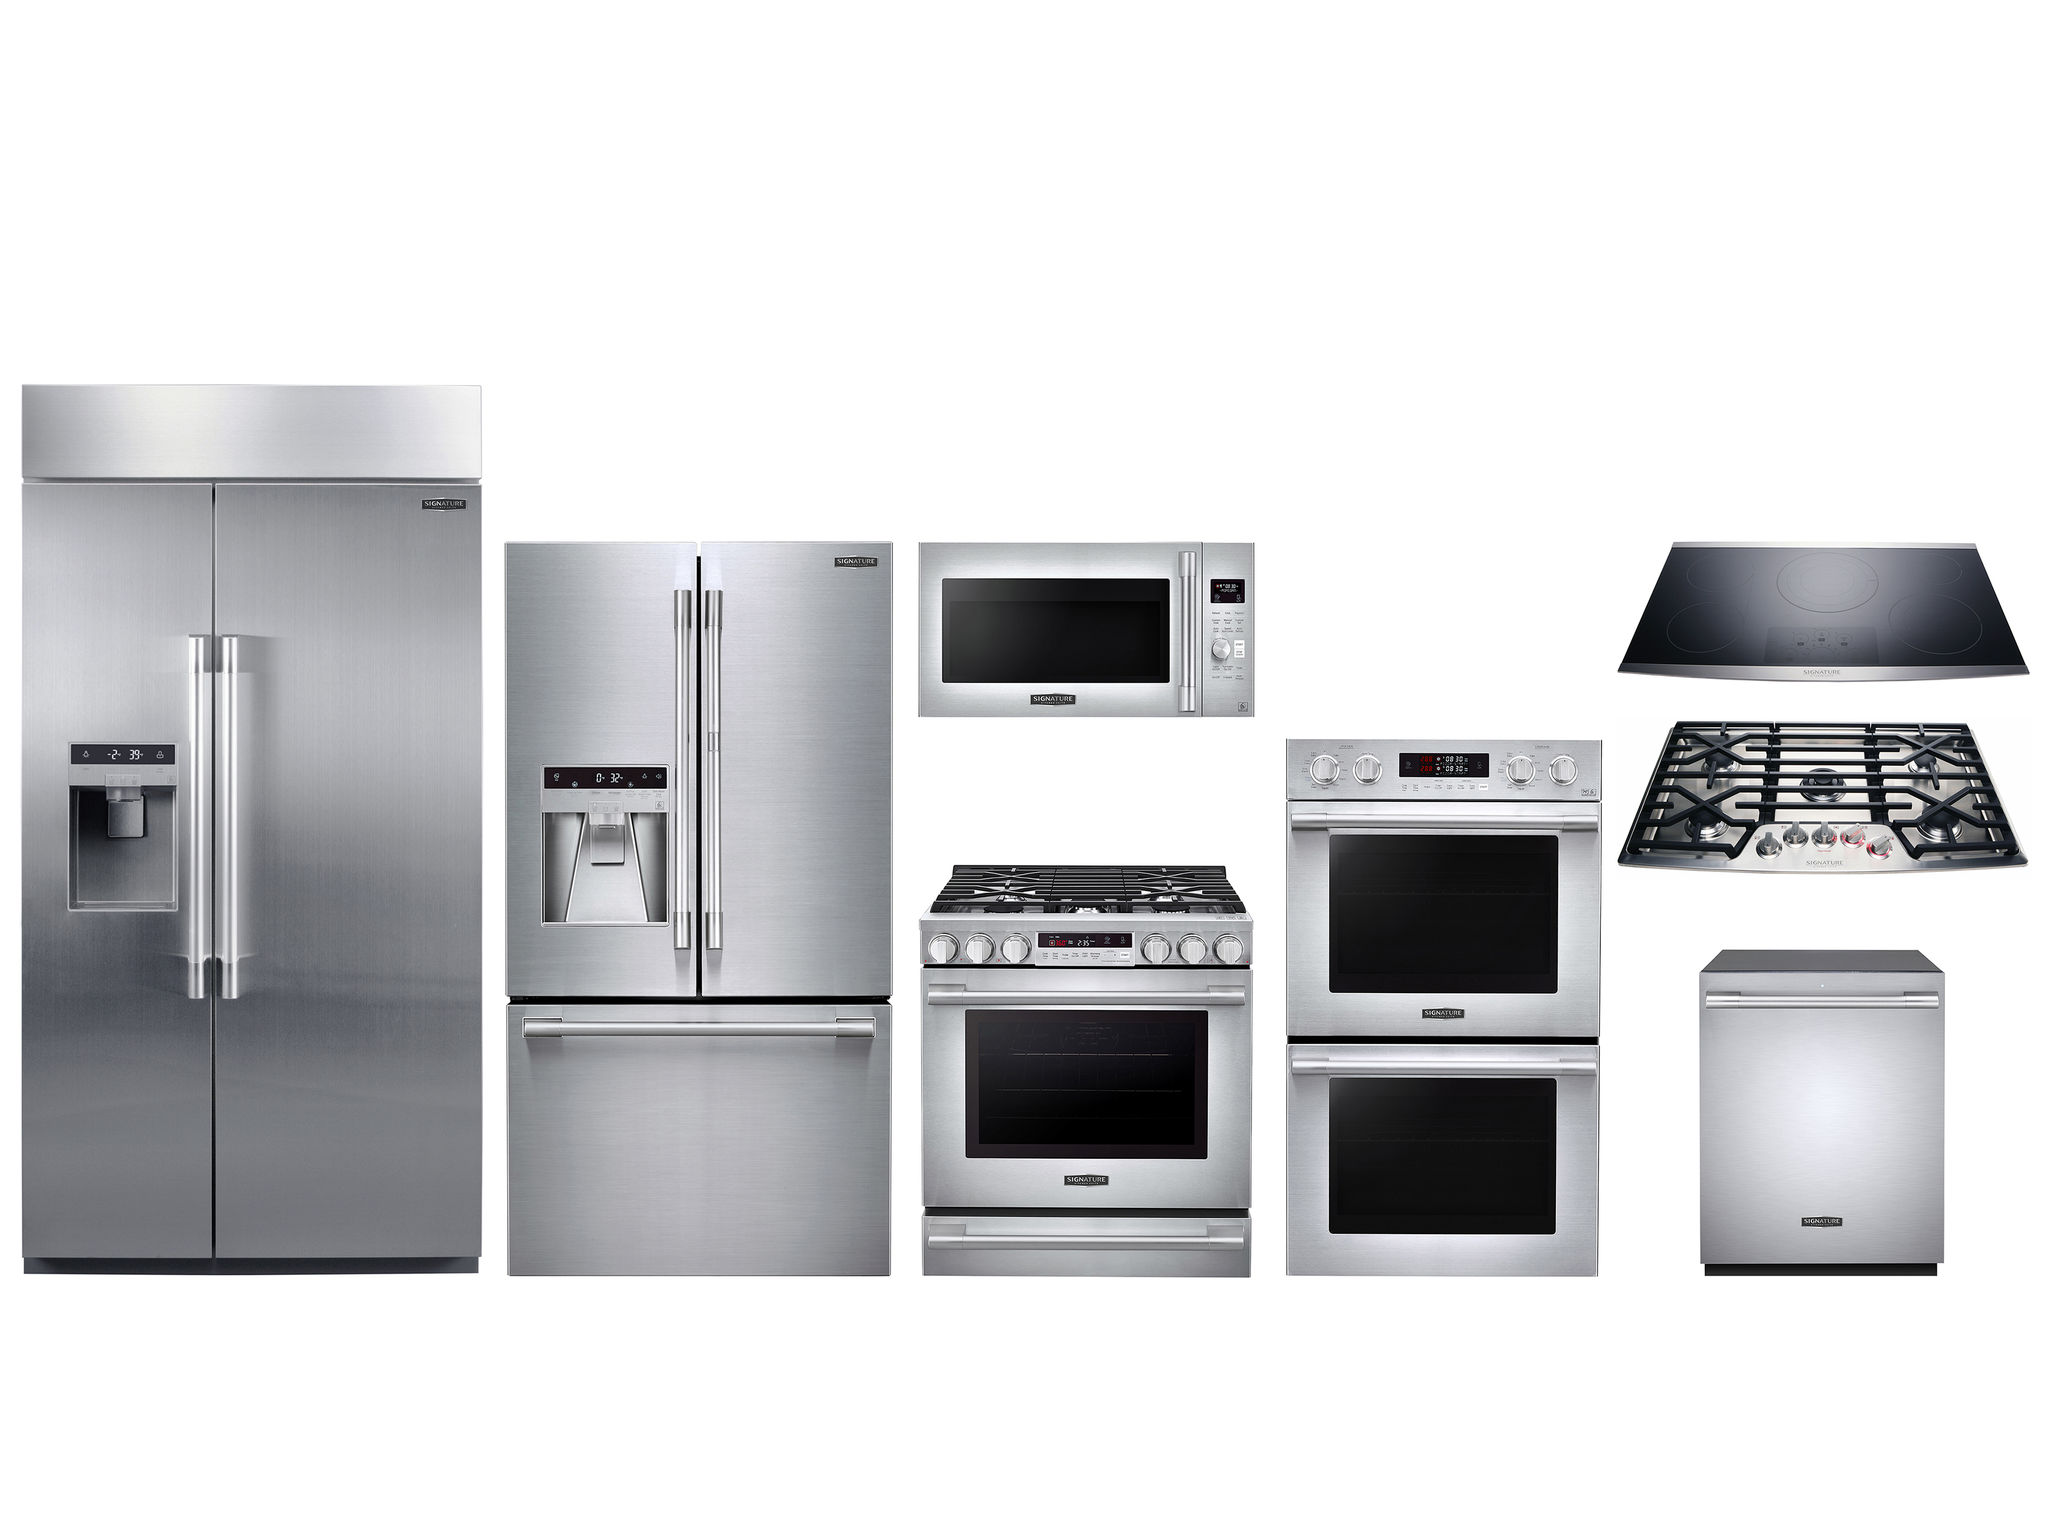 Appliance Sears Stainless Steel Kitchen Appliance Package Lg